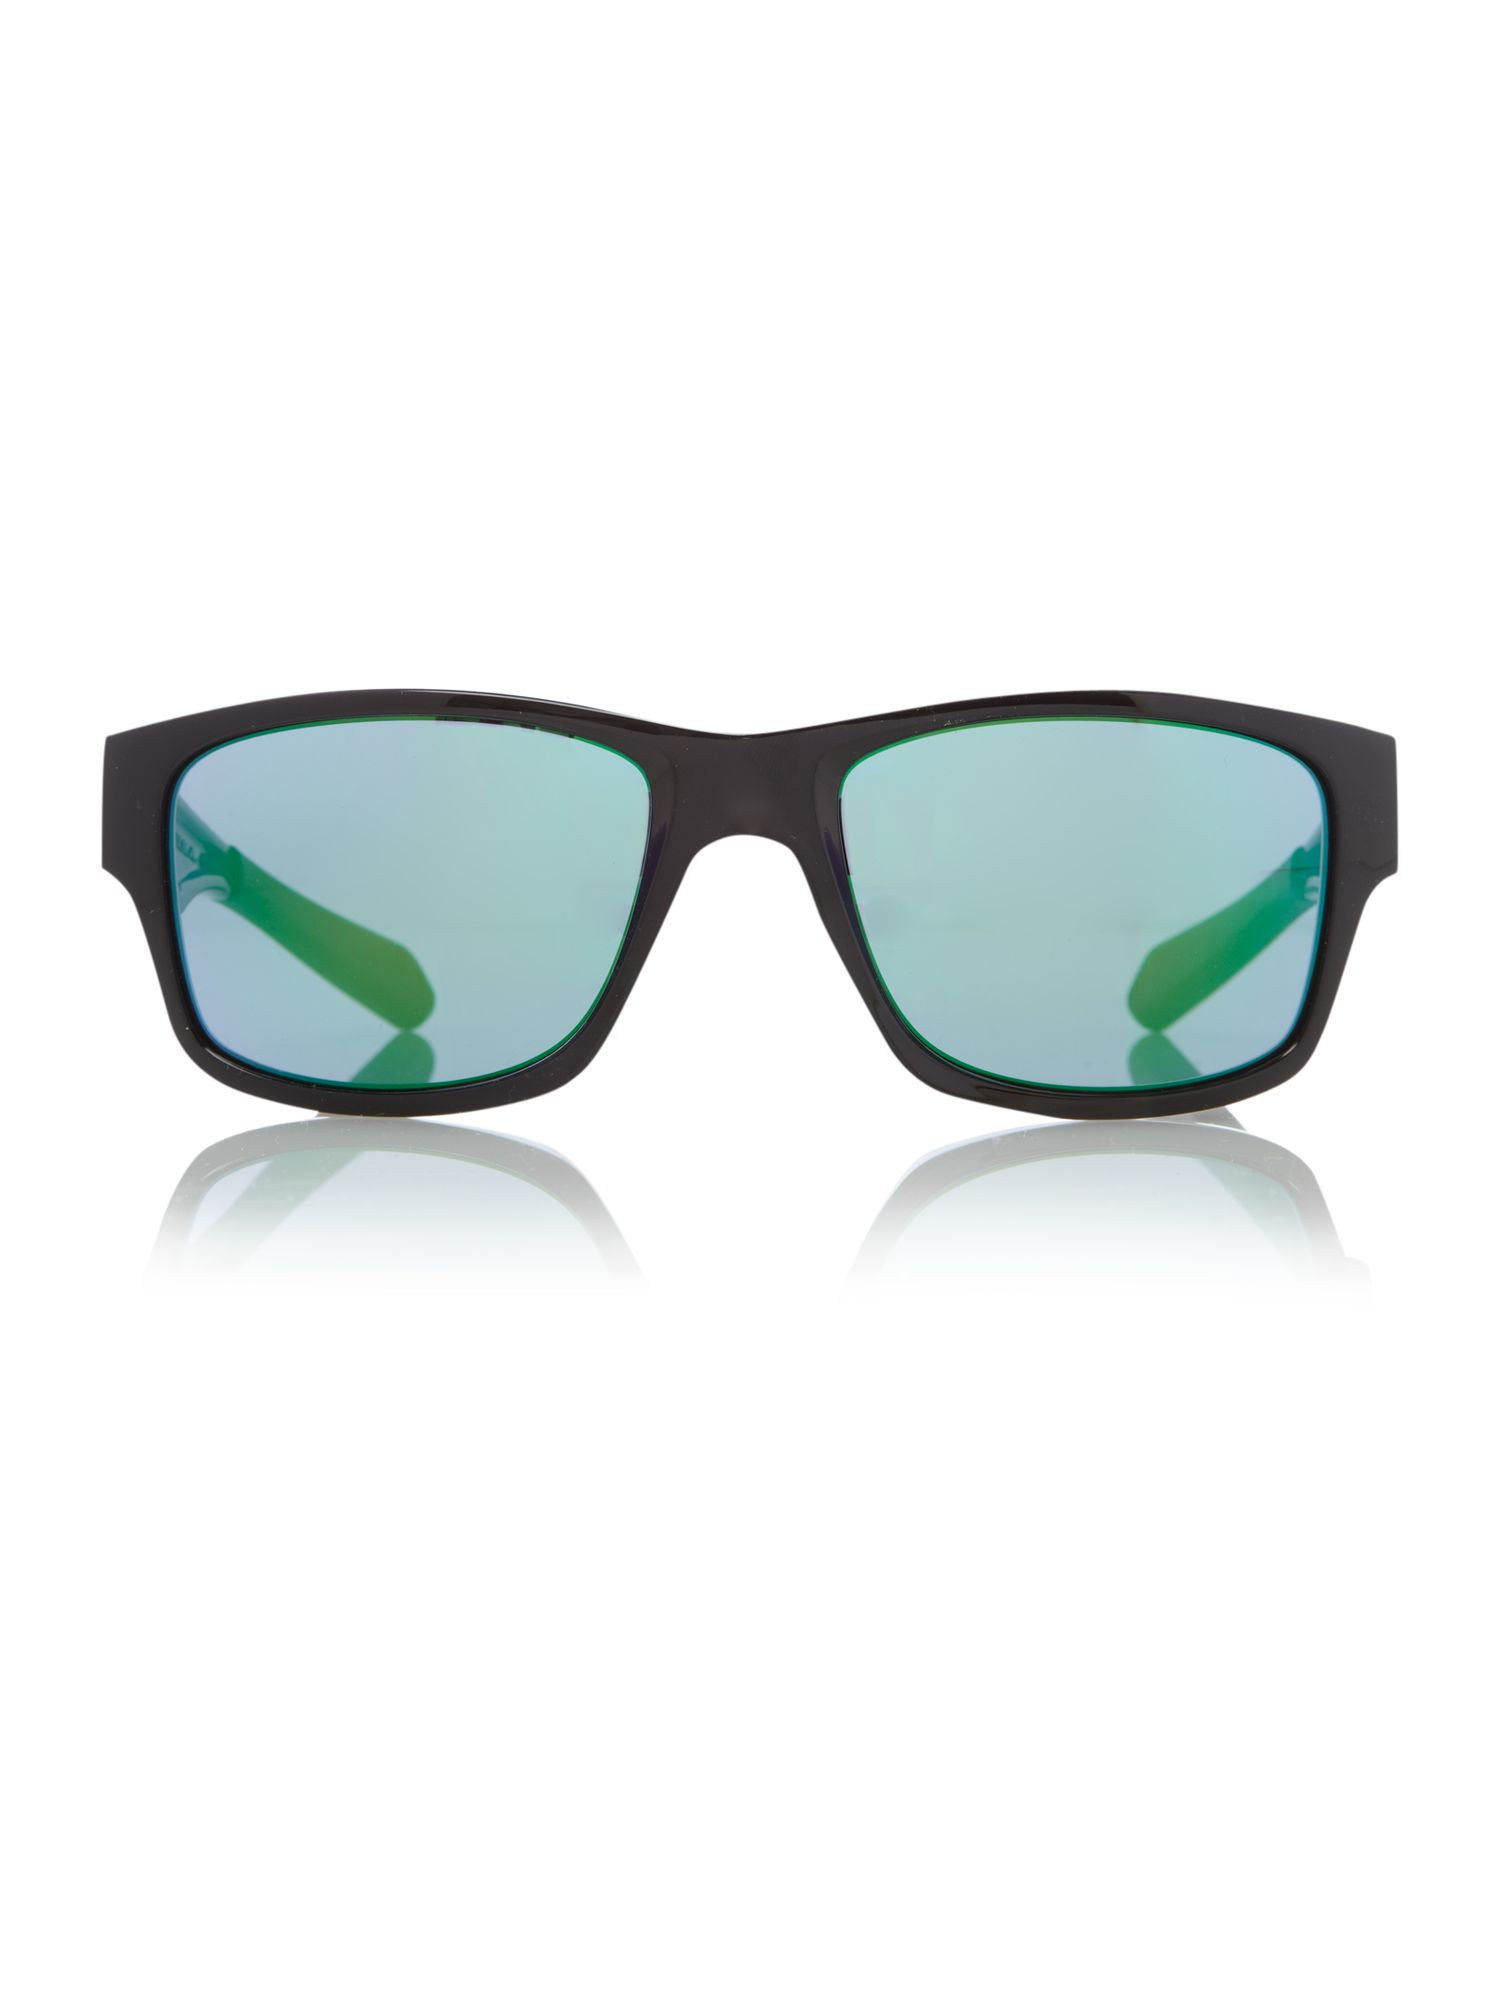 Mens OO9135 Jupiter Squared Sunglasses